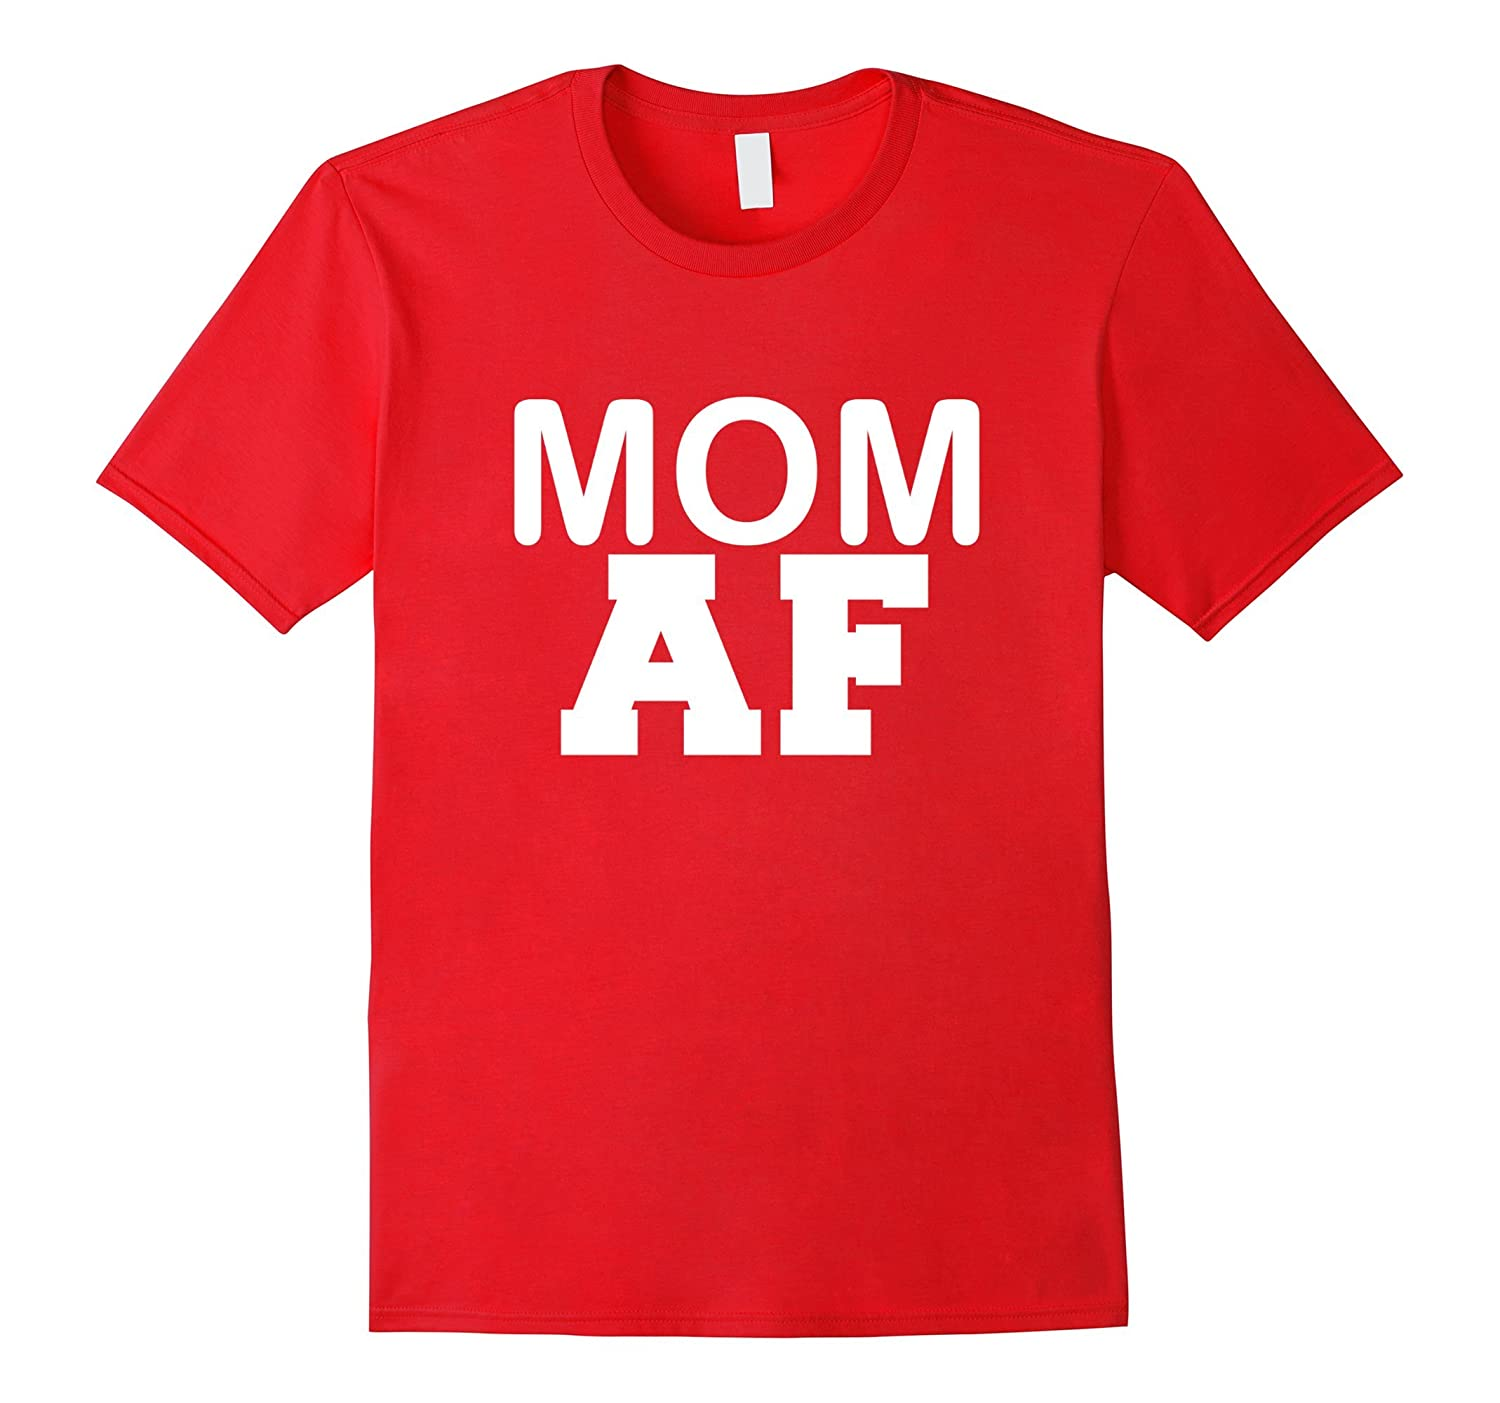 Mom AF Funny T-shirt Best Mom Mama Mothers Day Gift Parents-Vaci